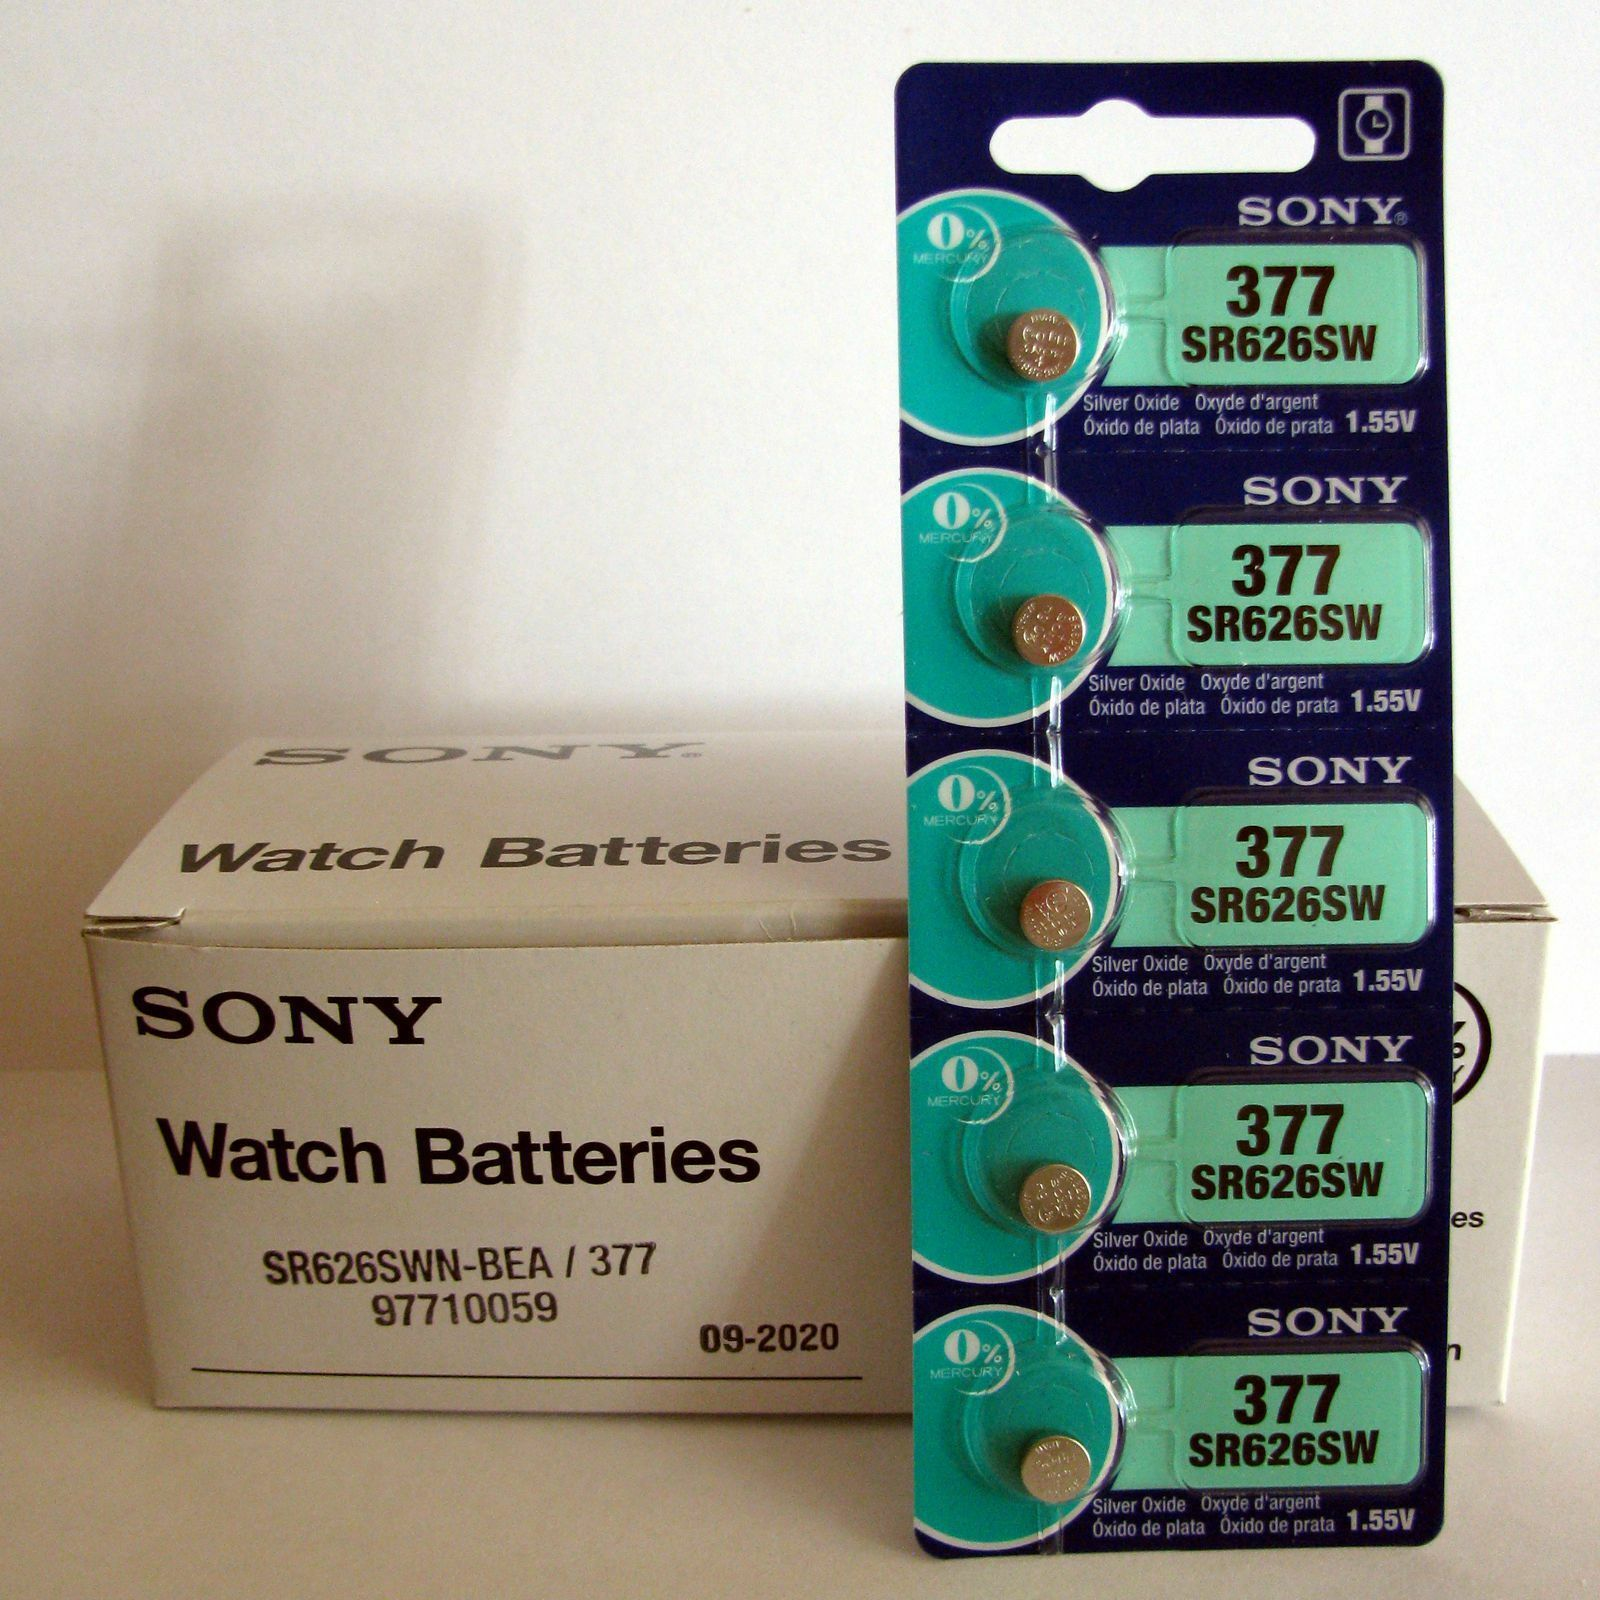 Sony 377/SR626SW Watch Battery Five Strip